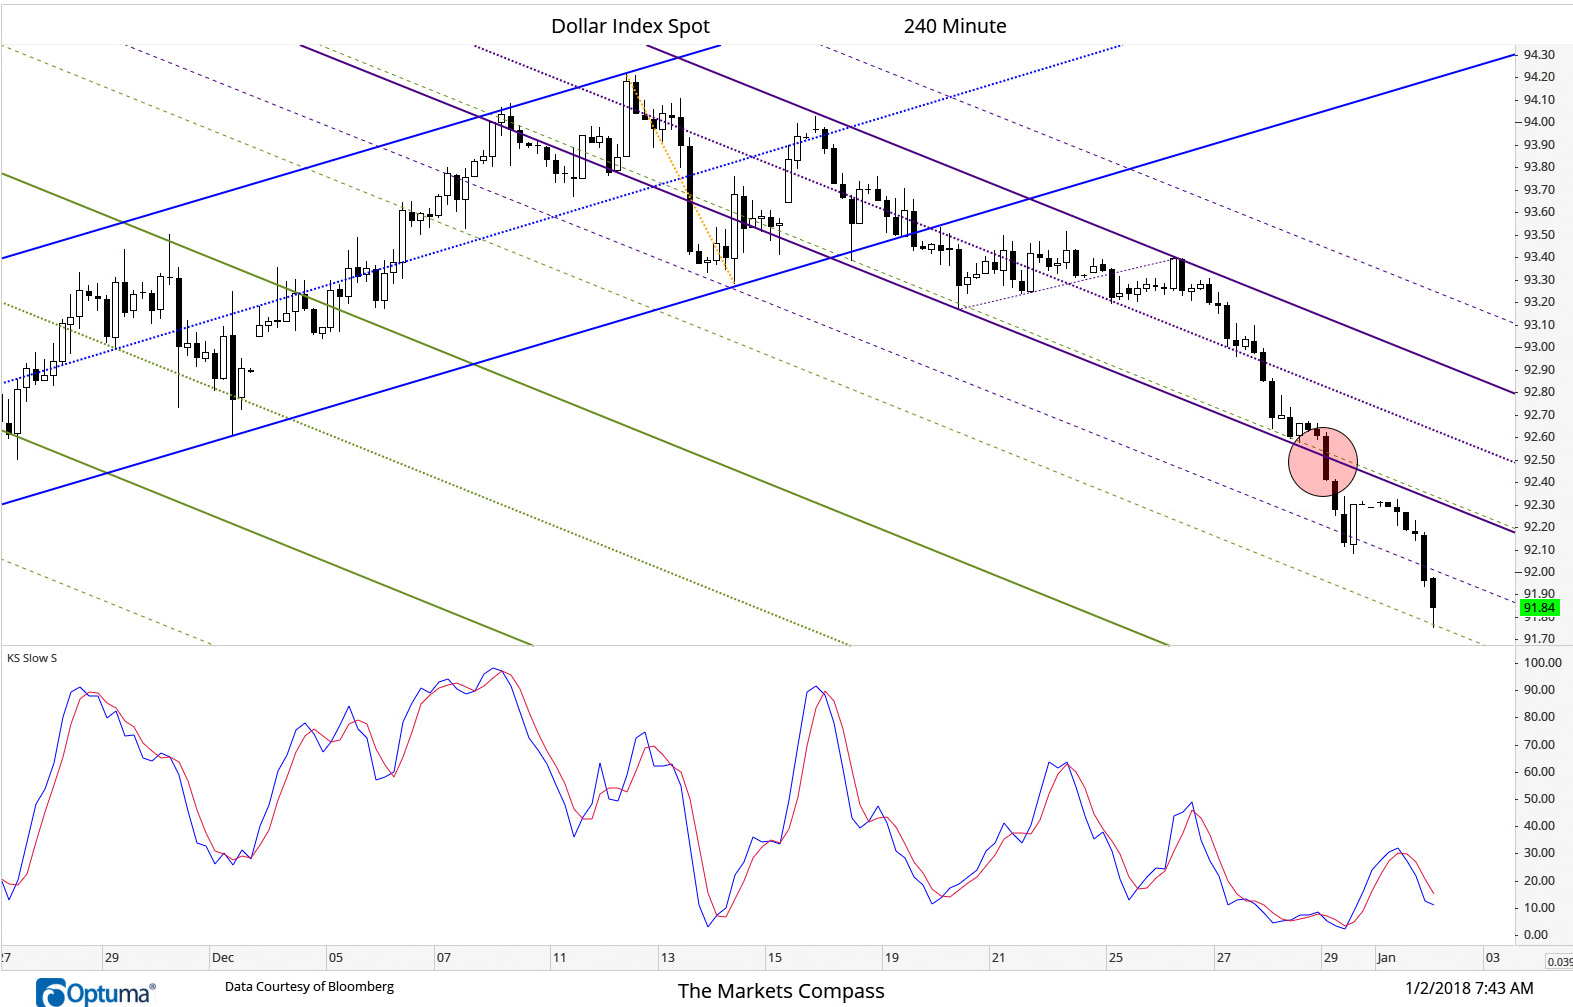 During the earlier morning hours of trading on Friday the DXY dropped through duel support of the Lower Parallel of the newly drawn Schiff Modified Pitchfork (purple) and the 2nd Upper Warning Line of the longer term Schiff Modified Pitchfork (green). These two pitchforks share the same angle/frequency. Short term support has been discovered at the 1st Upper Warning Line of longer term Pitchfork this morning. Despite the oversold condition reflected by the current position of the Slow Stochastic the series of lower highs in the oscillator remains intact and only an advance through the Lower Parallel of the newly drawn Pitchfork (purple) would suggest a counter trend rally was underway.